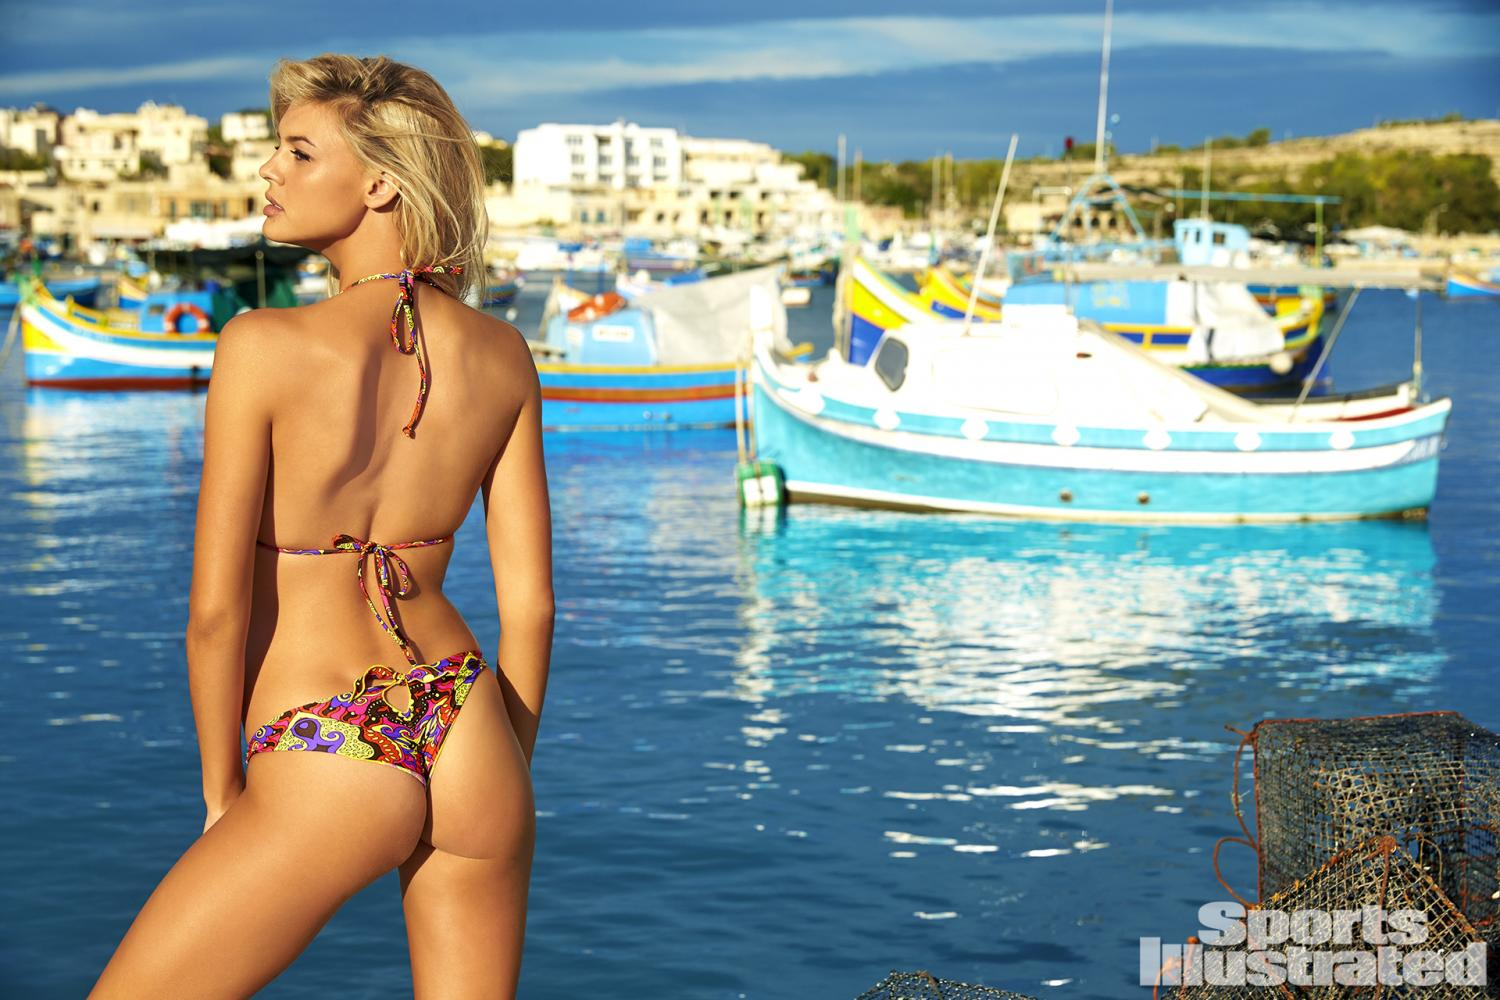 Kelly Rohrbach photo 114 of 358 pics, wallpaper - photo #835807 - ThePlace2